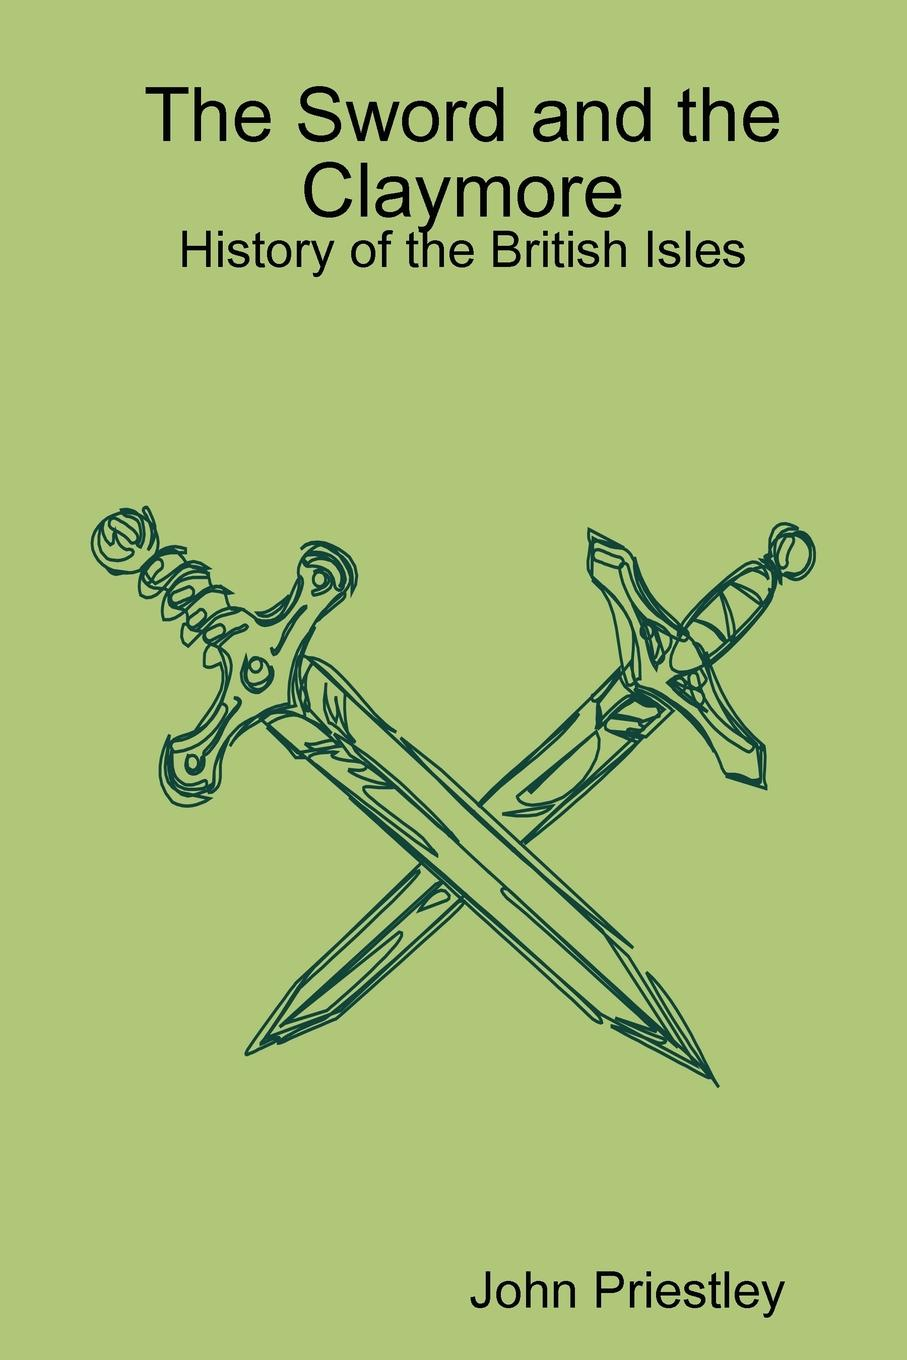 John Priestley The Sword and the Claymore george moore the history of the british revolution of 1688 9